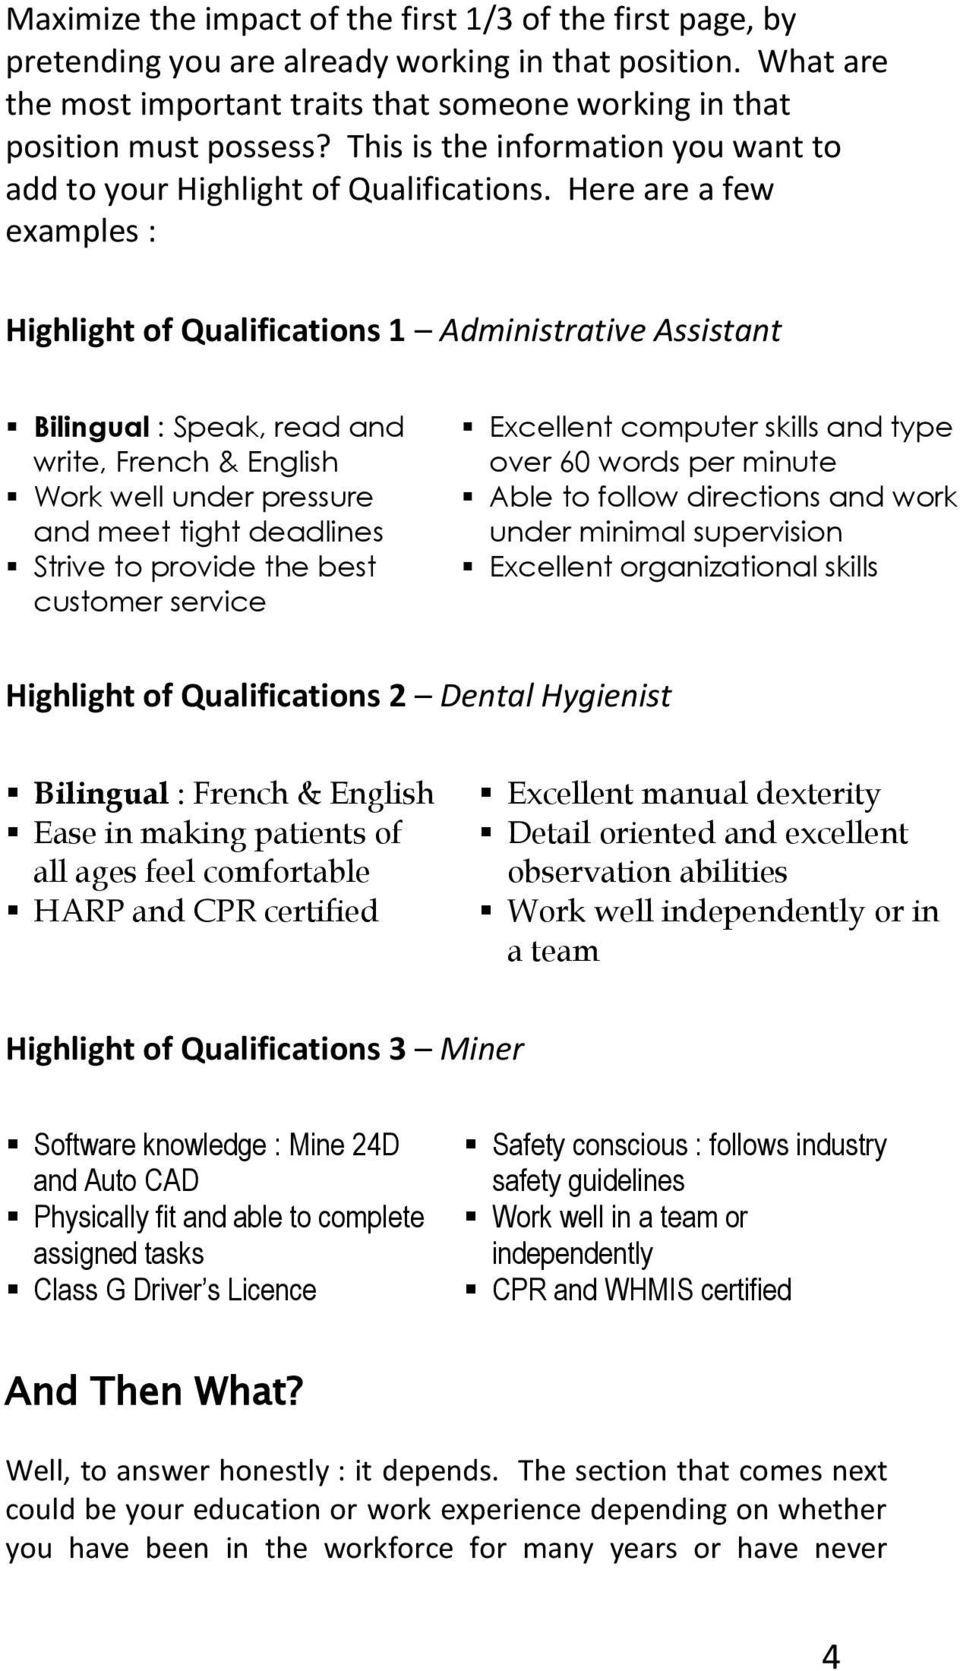 Here are a few examples : Highlight of Qualifications 1 Administrative Assistant Bilingual : Speak, read and write, French & English Work well under pressure and meet tight deadlines Strive to